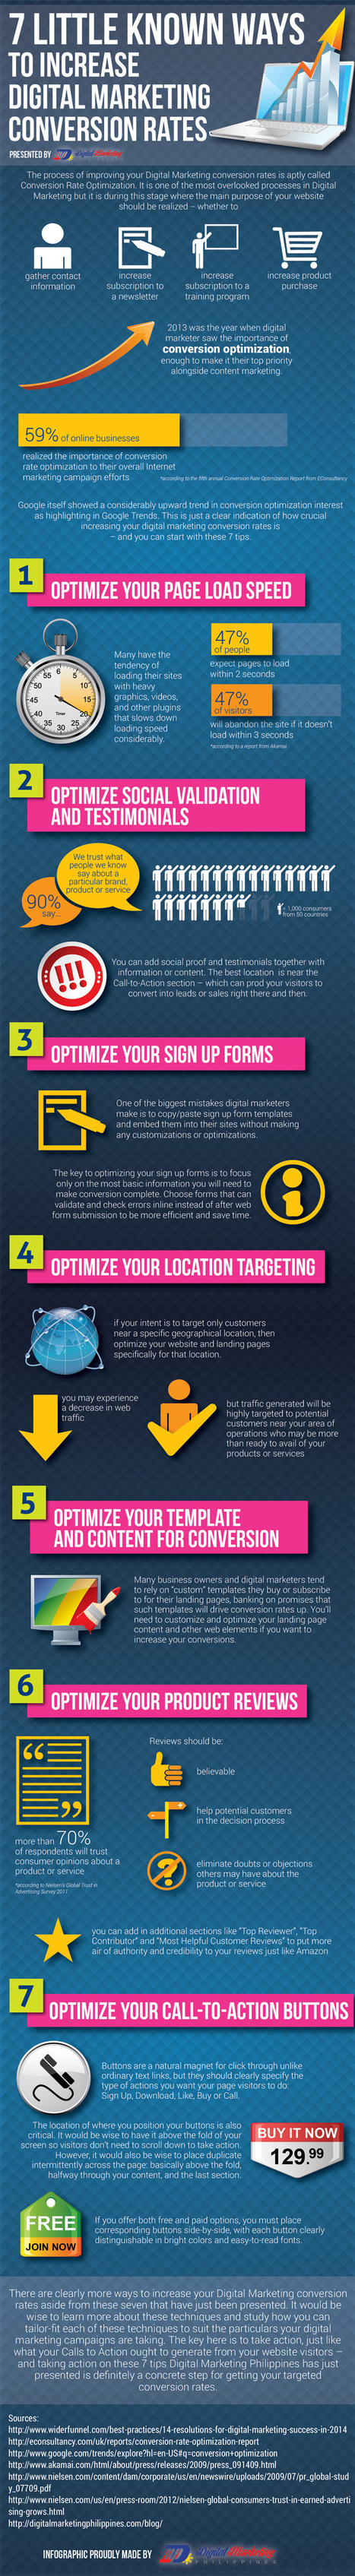 7 Little Known Ways to Increase Digital Marketing Conversion Rates [Infographic] | Conversion Marketing (English) | Scoop.it